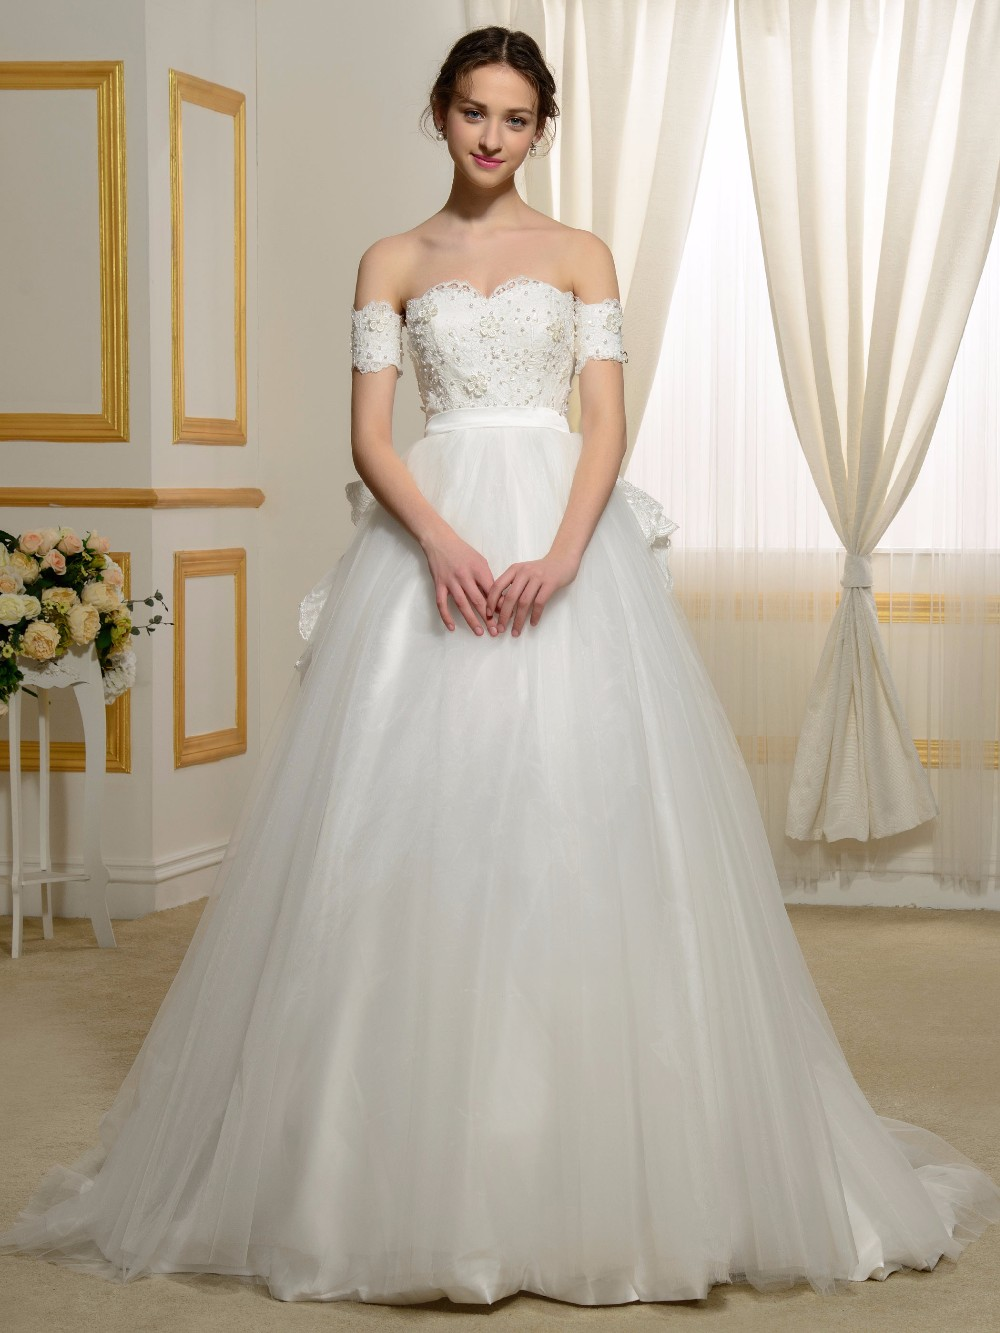 Wedding Fairytale Wedding Dresses online buy wholesale fairytale wedding dresses from china 2016 elegant white ball gown sweetheart neck beaded lace sweep train bridal